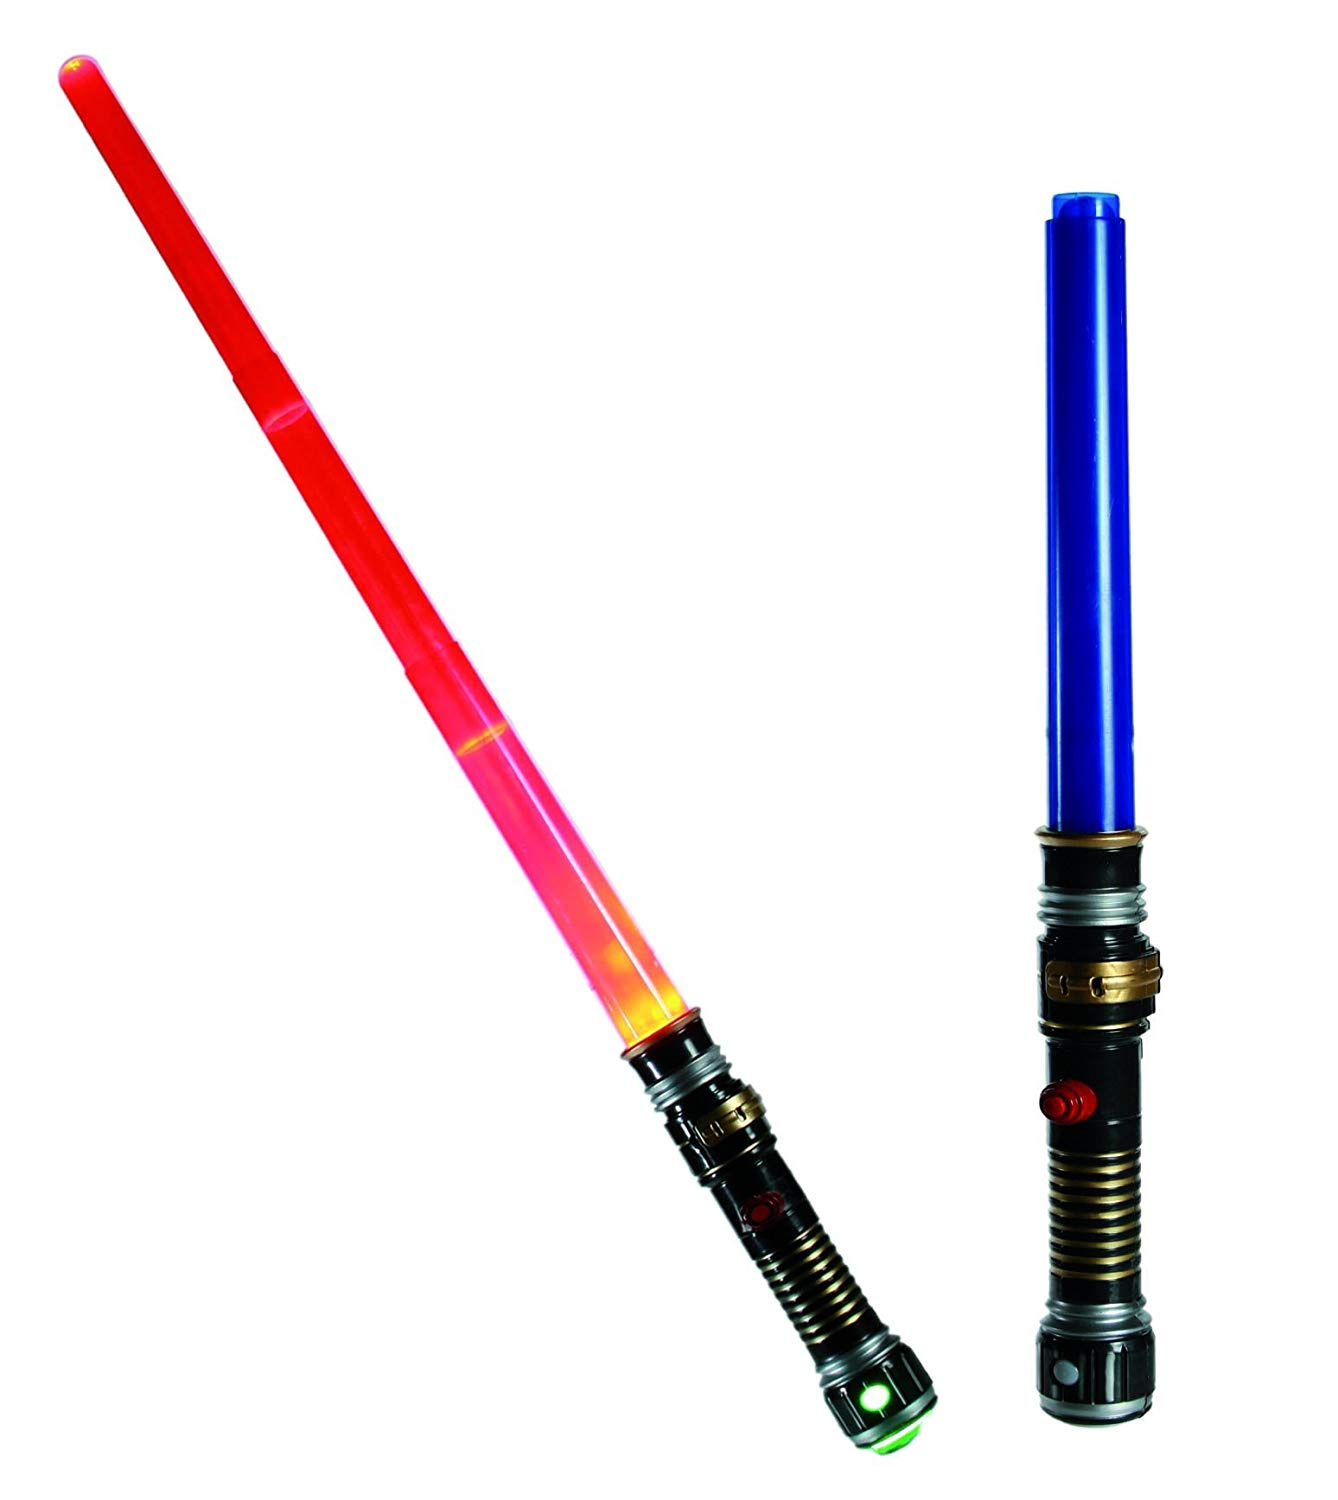 Light Sabre with Sound Space Smiley Gifts One Supplied Christmas Toy Gift For Boys Children Kids Age 3+ Ideal Stocking Filler Be A Space Hero